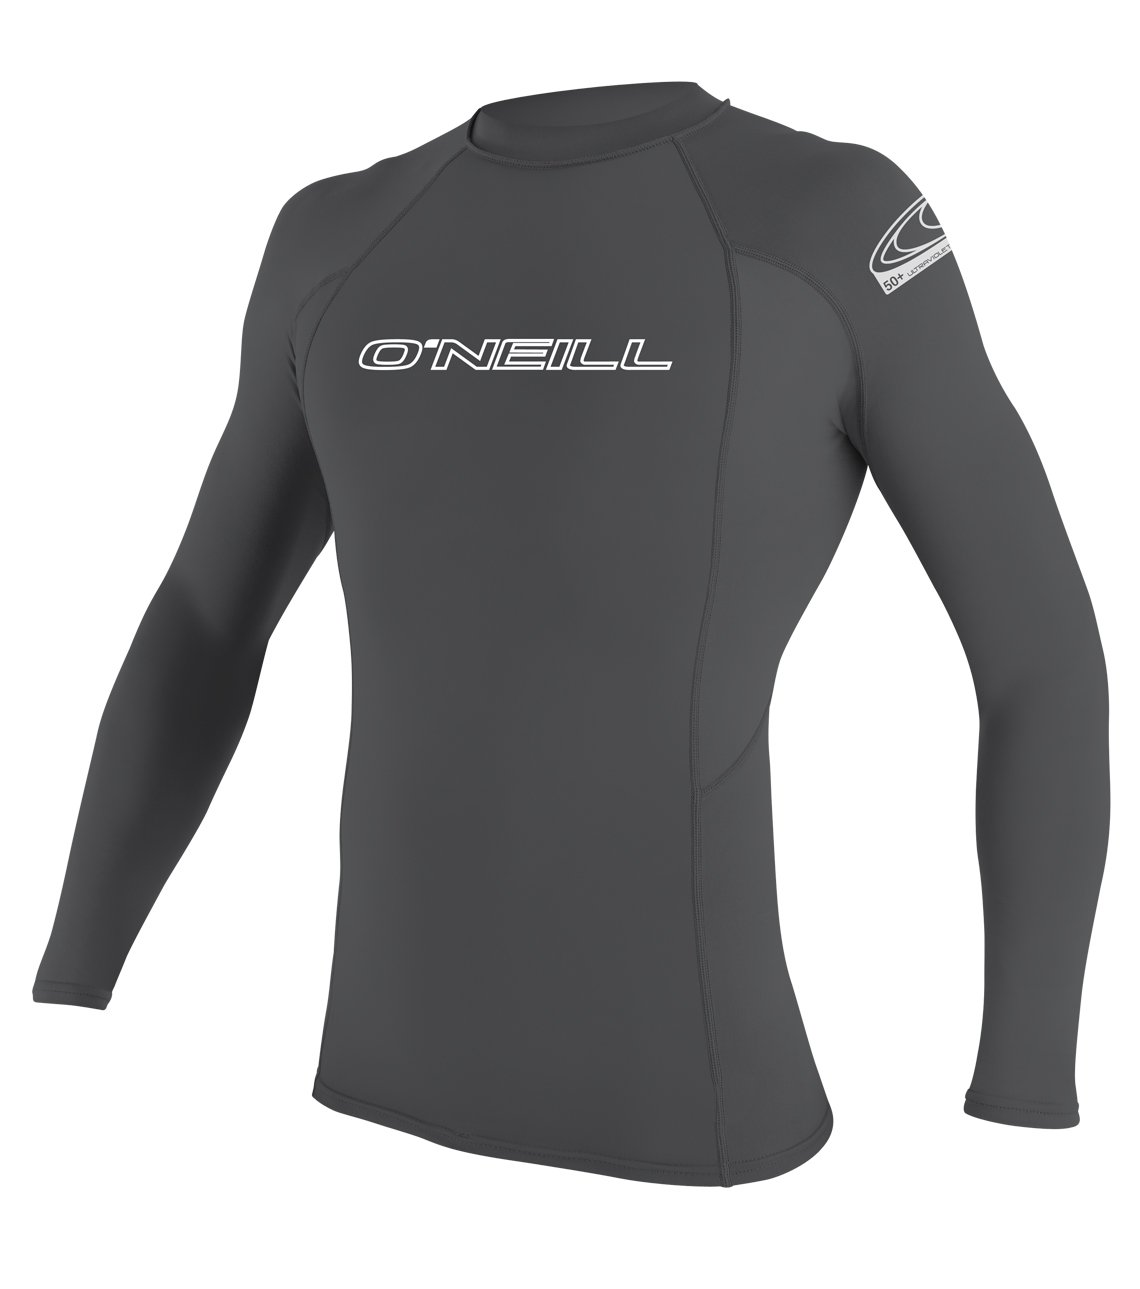 O'Neill Men's Basic Skins UPF 50+ Long Sleeve Rash Guard, Smoke, XX-Large by O'Neill Wetsuits